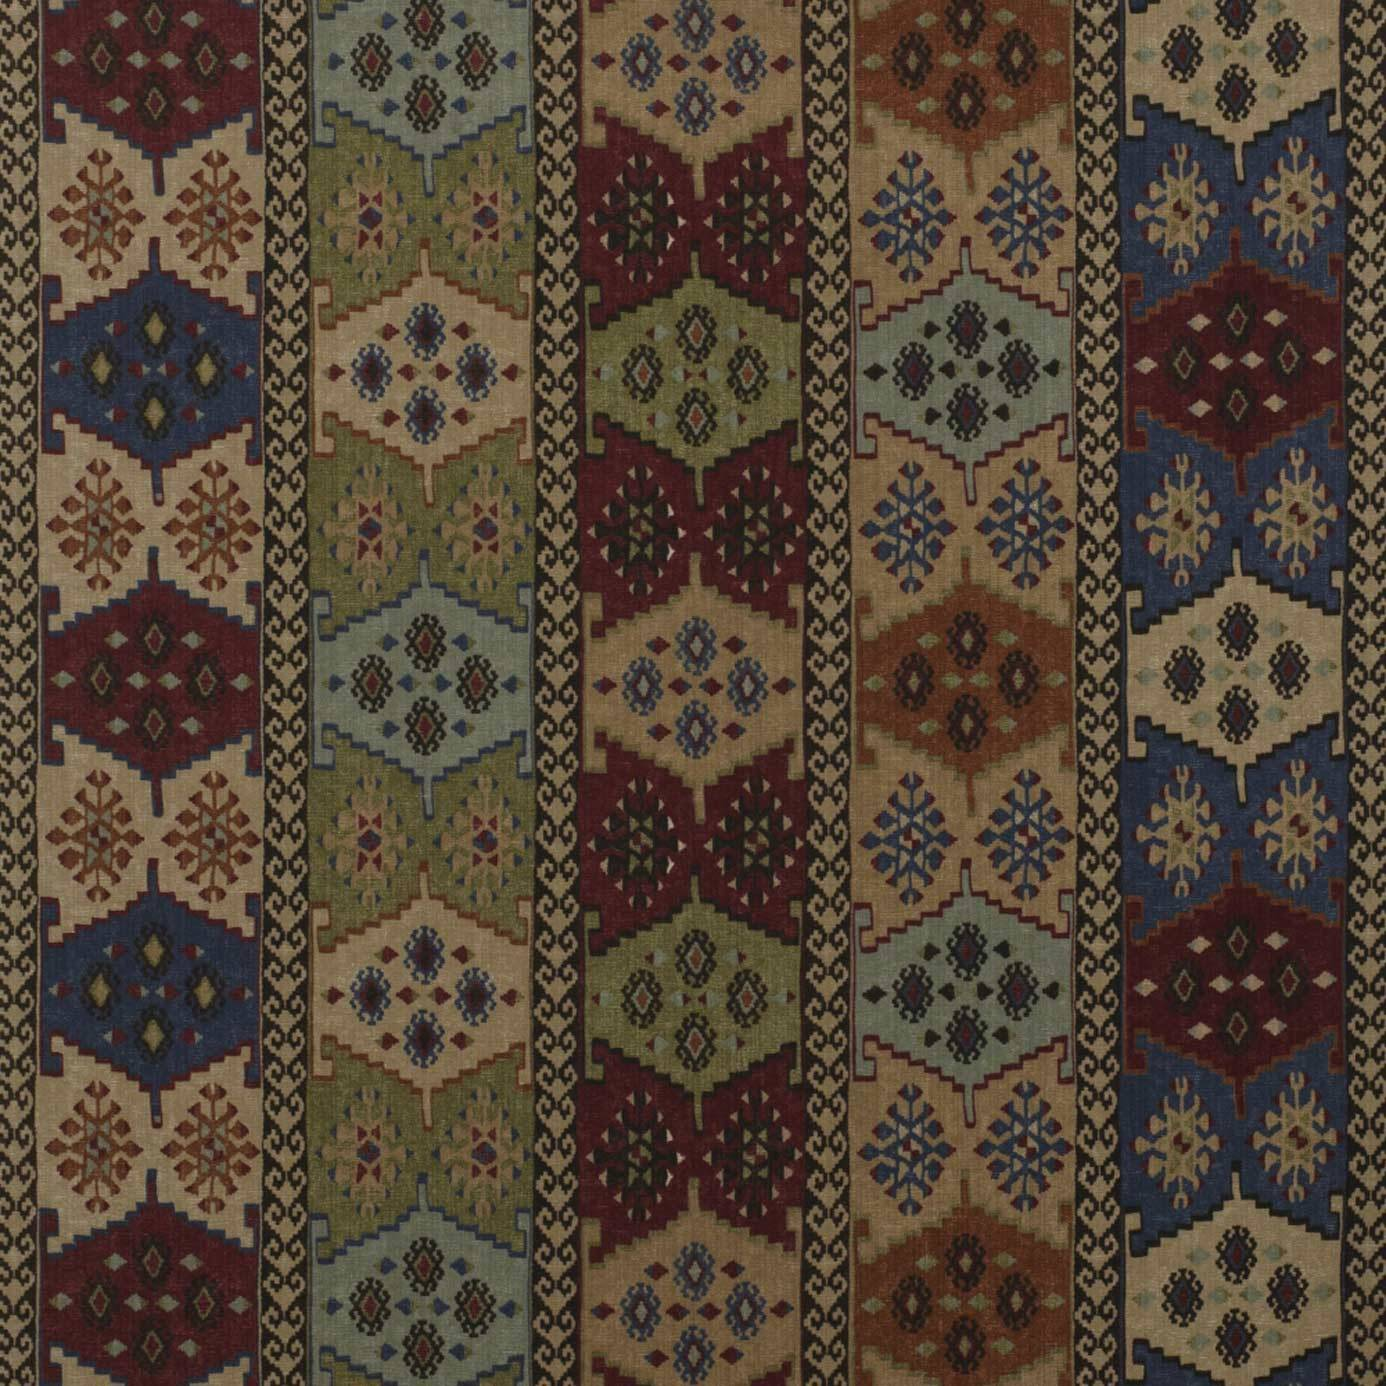 Anthropology Fabric Antique Anthropologyantique